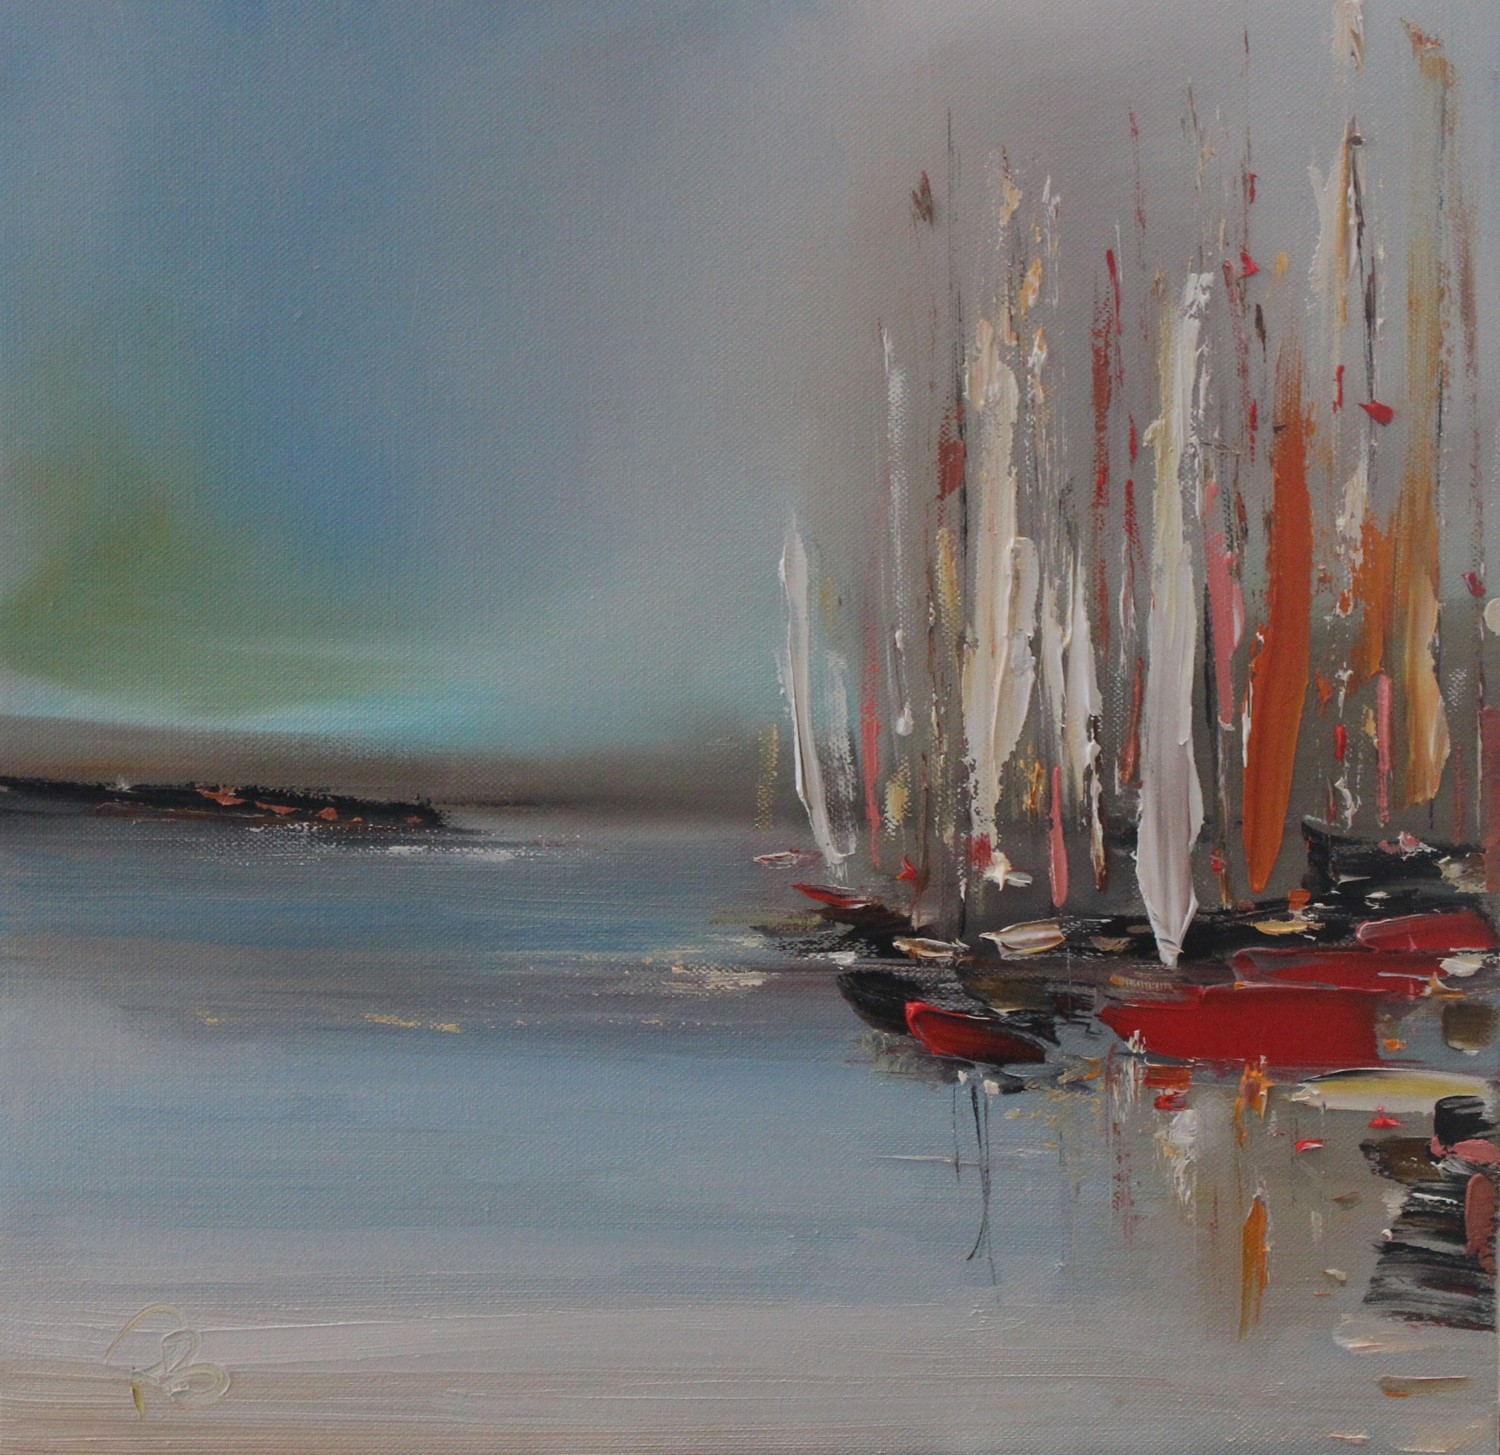 'A Crowd of Boats' by artist Rosanne Barr